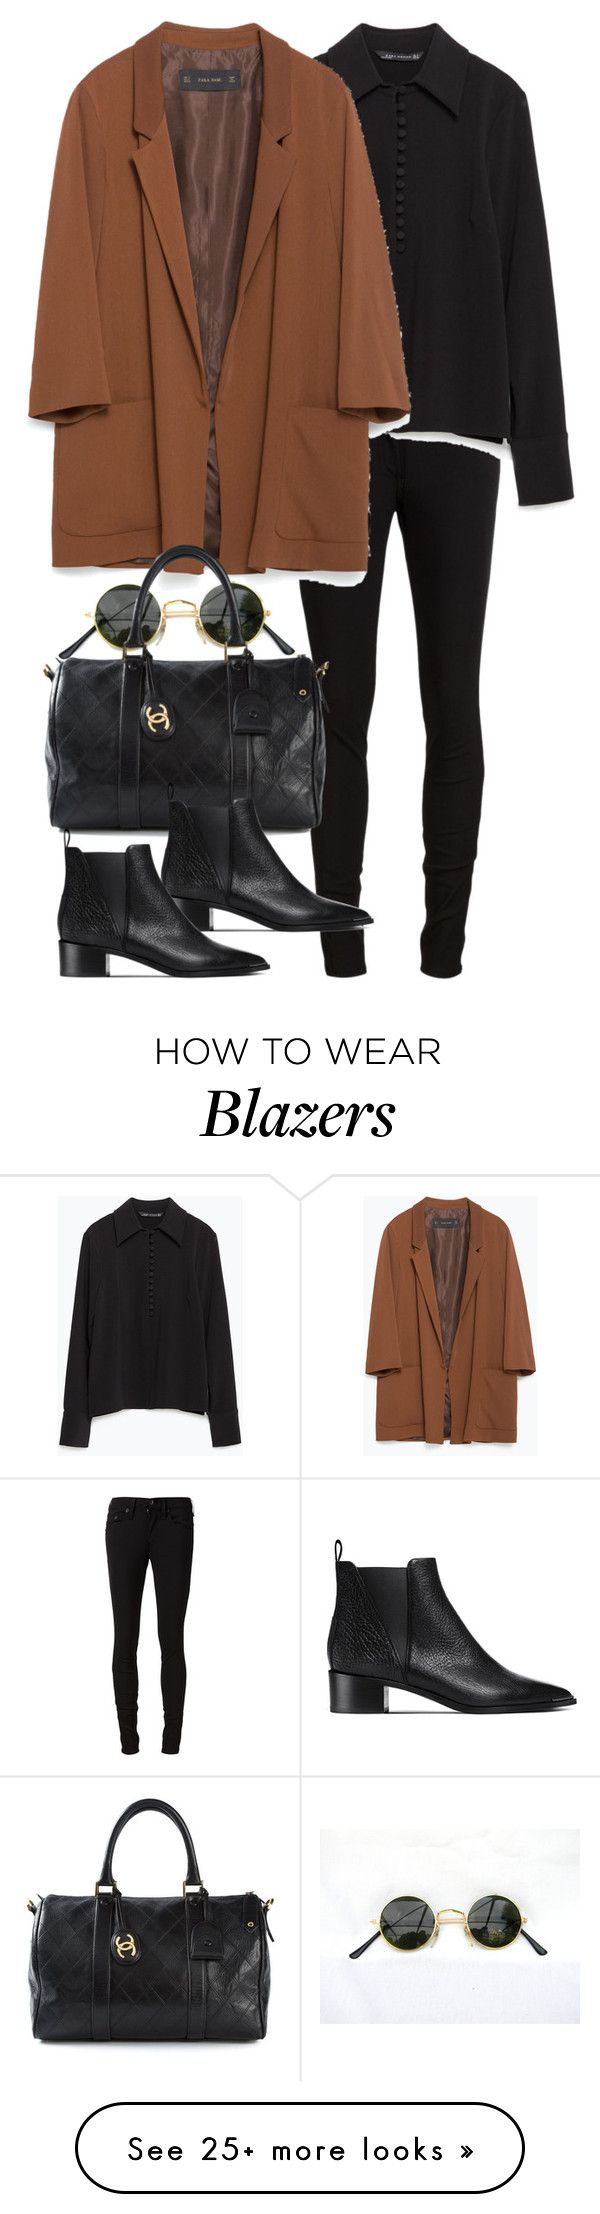 """Untitled #7969"" by nikka-phillips on Polyvore featuring rag & bone/JEAN, Zara, Chanel and Acne Studios"